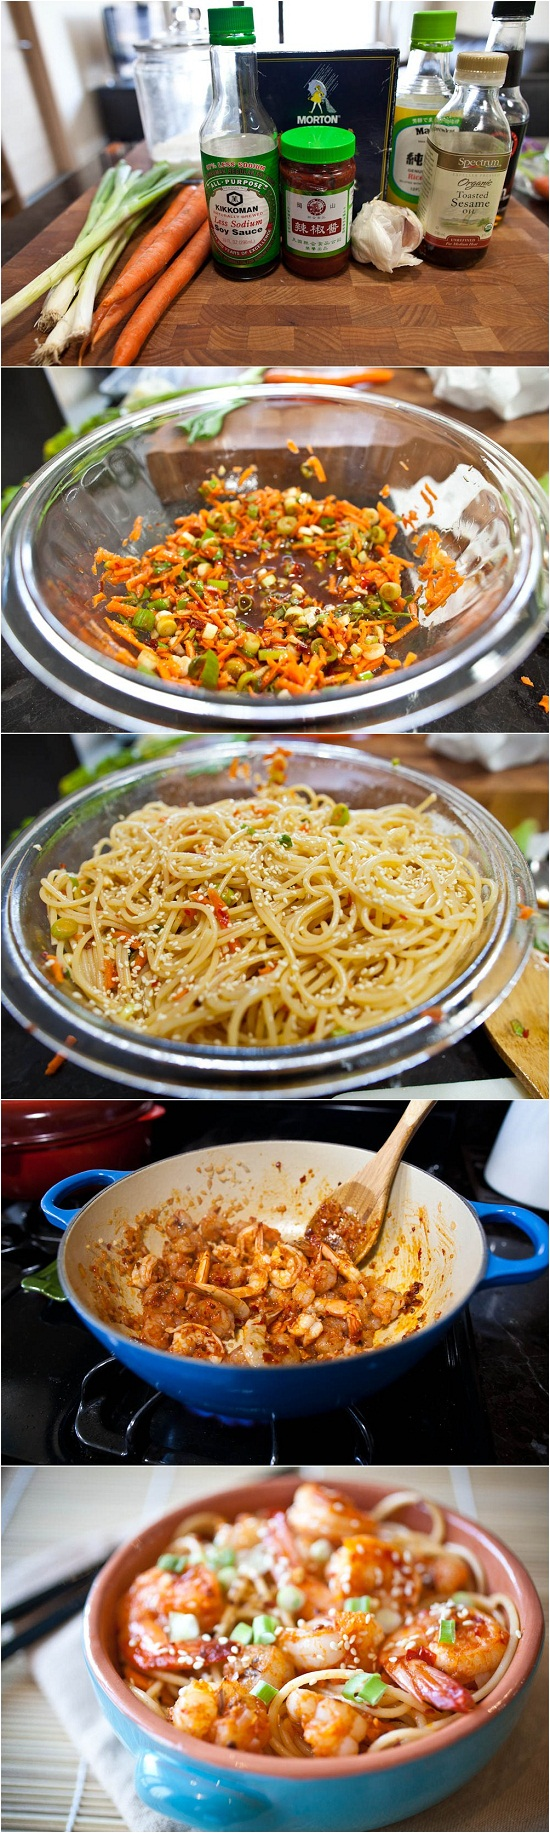 Chilled-Spicy-Sesame-Noodles-with-Shrimp-Recipe